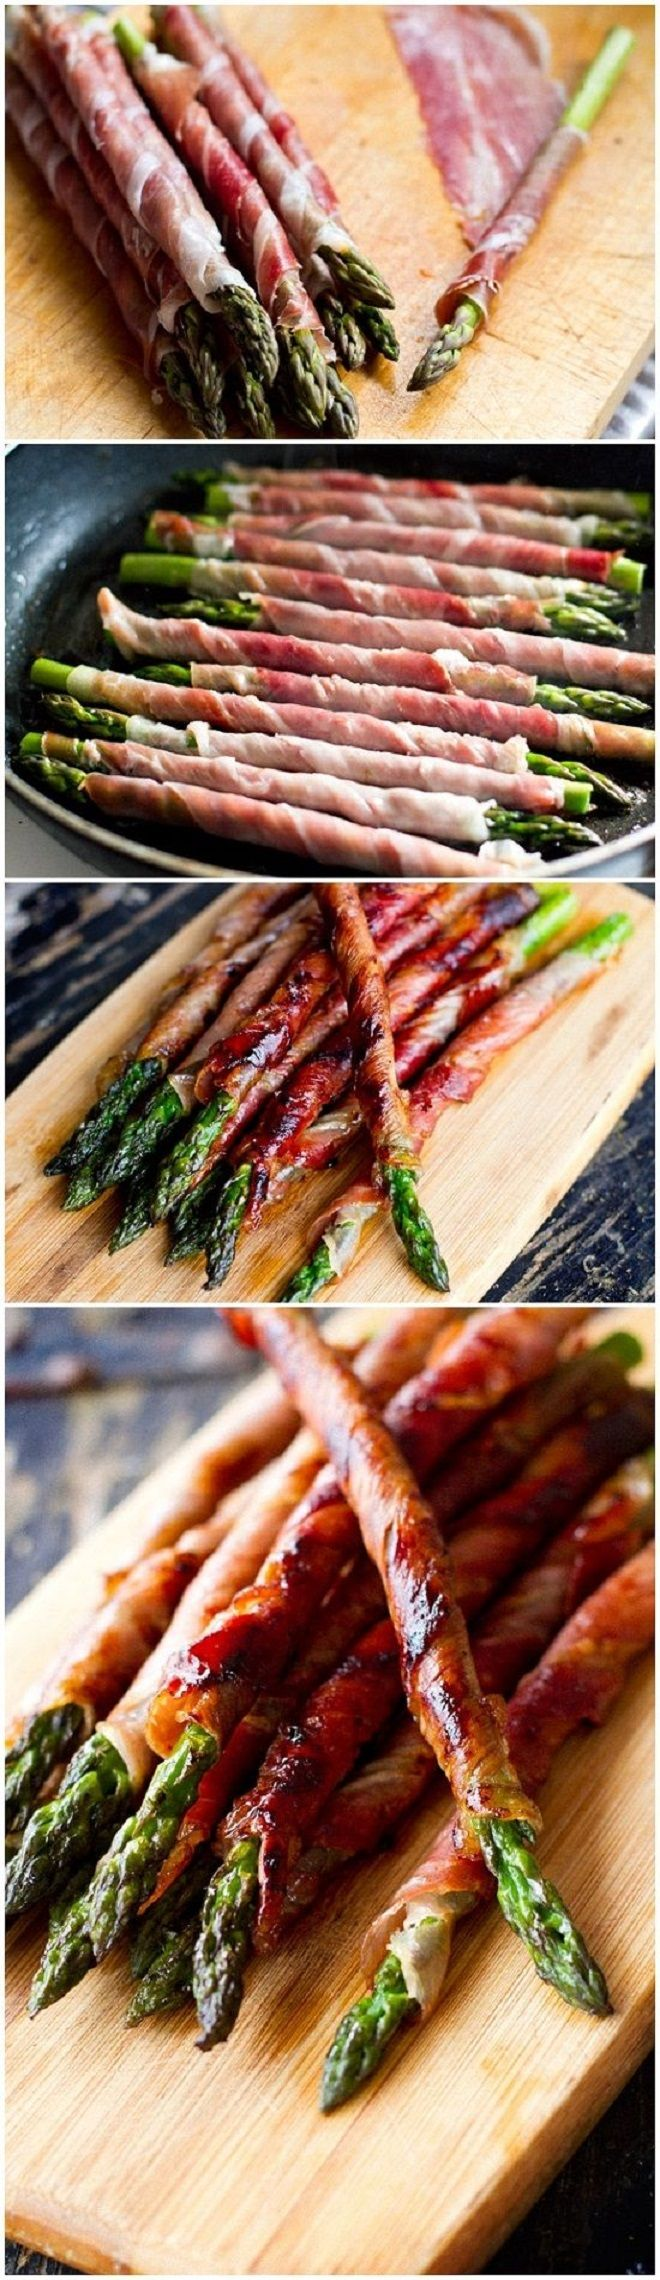 Prosciutto Wrapped Asparagus.. Crispier than bacon                                                                                                                                                                                 More